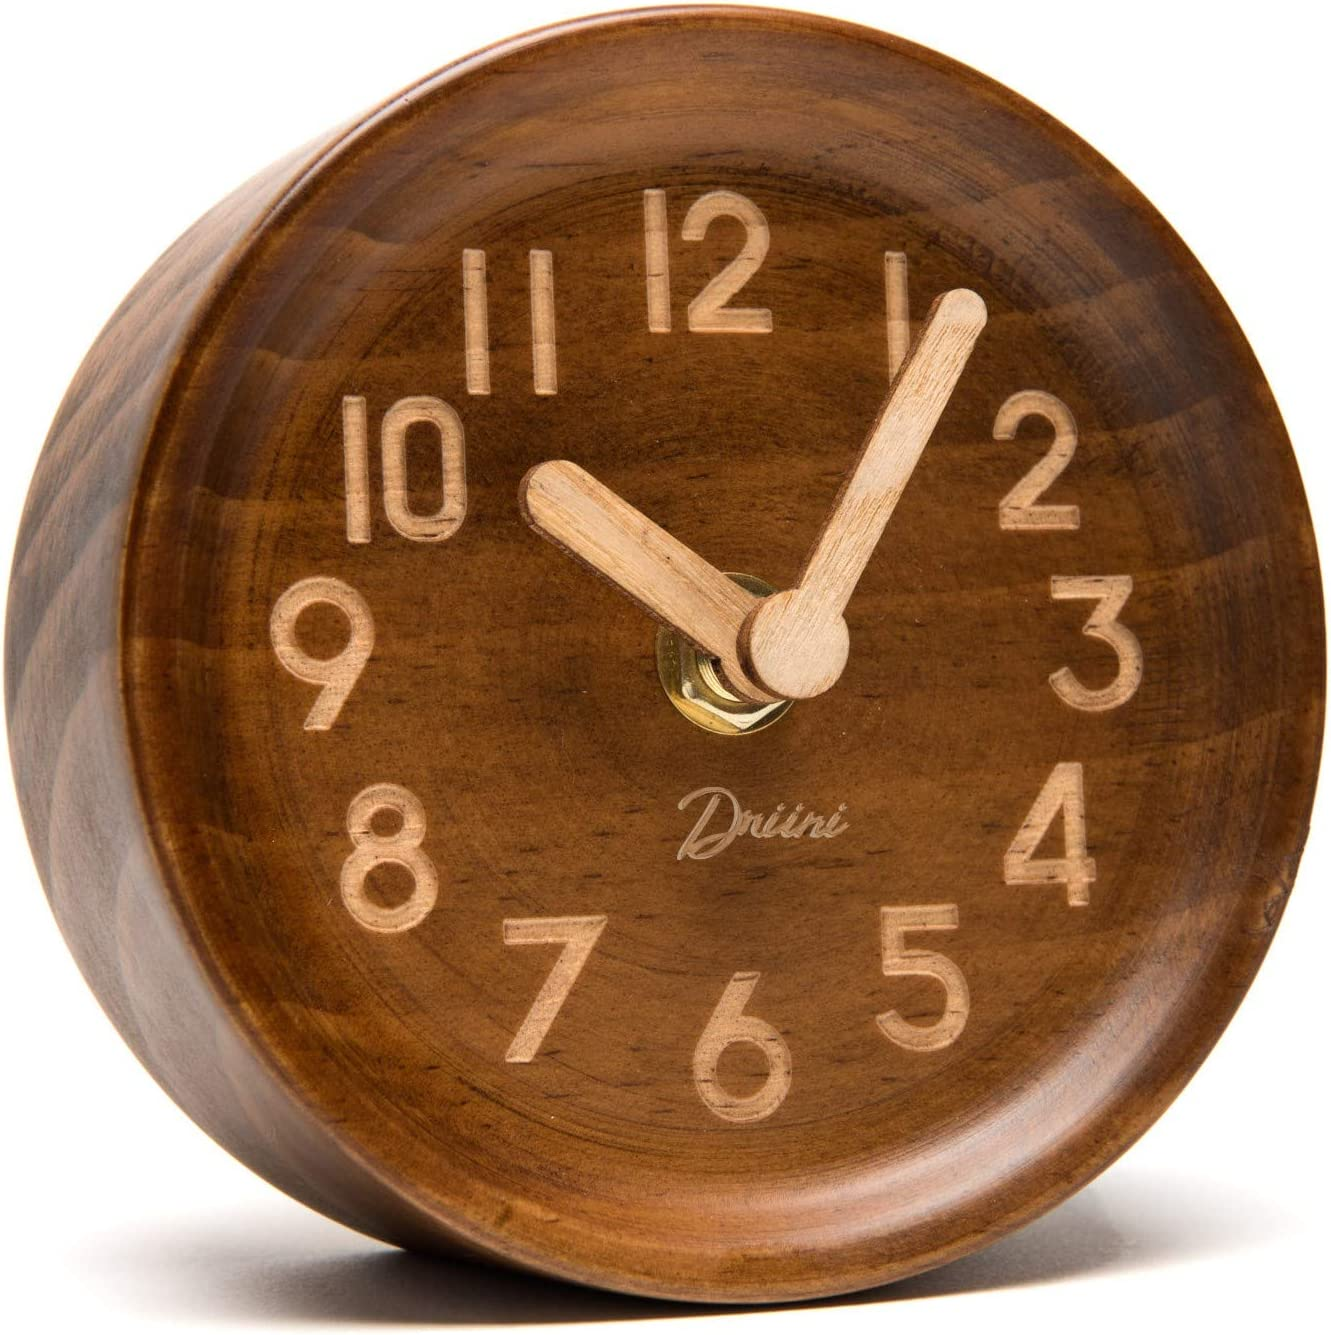 A picture of Driini Wooden Desk & Table Analog Clock to better elaborate Best Clock Presents